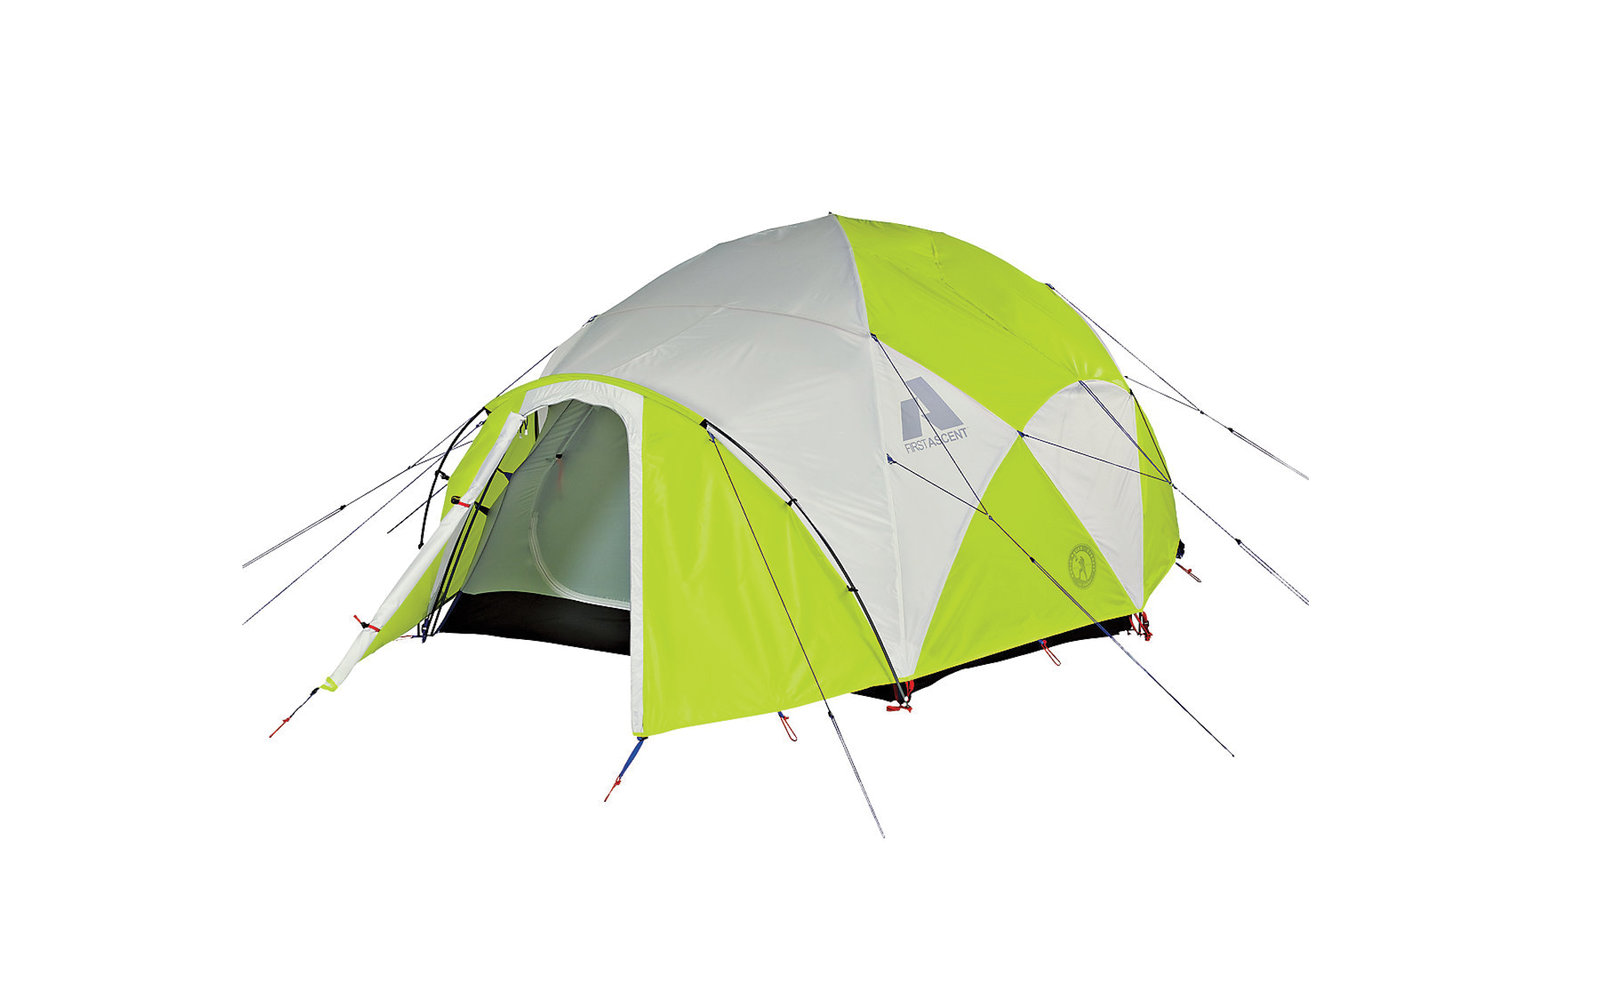 Eddie Bauer Katabatic 3-Person Tent  sc 1 st  Travel + Leisure & Best Camping Tents for Families Hikers and More | Travel + Leisure